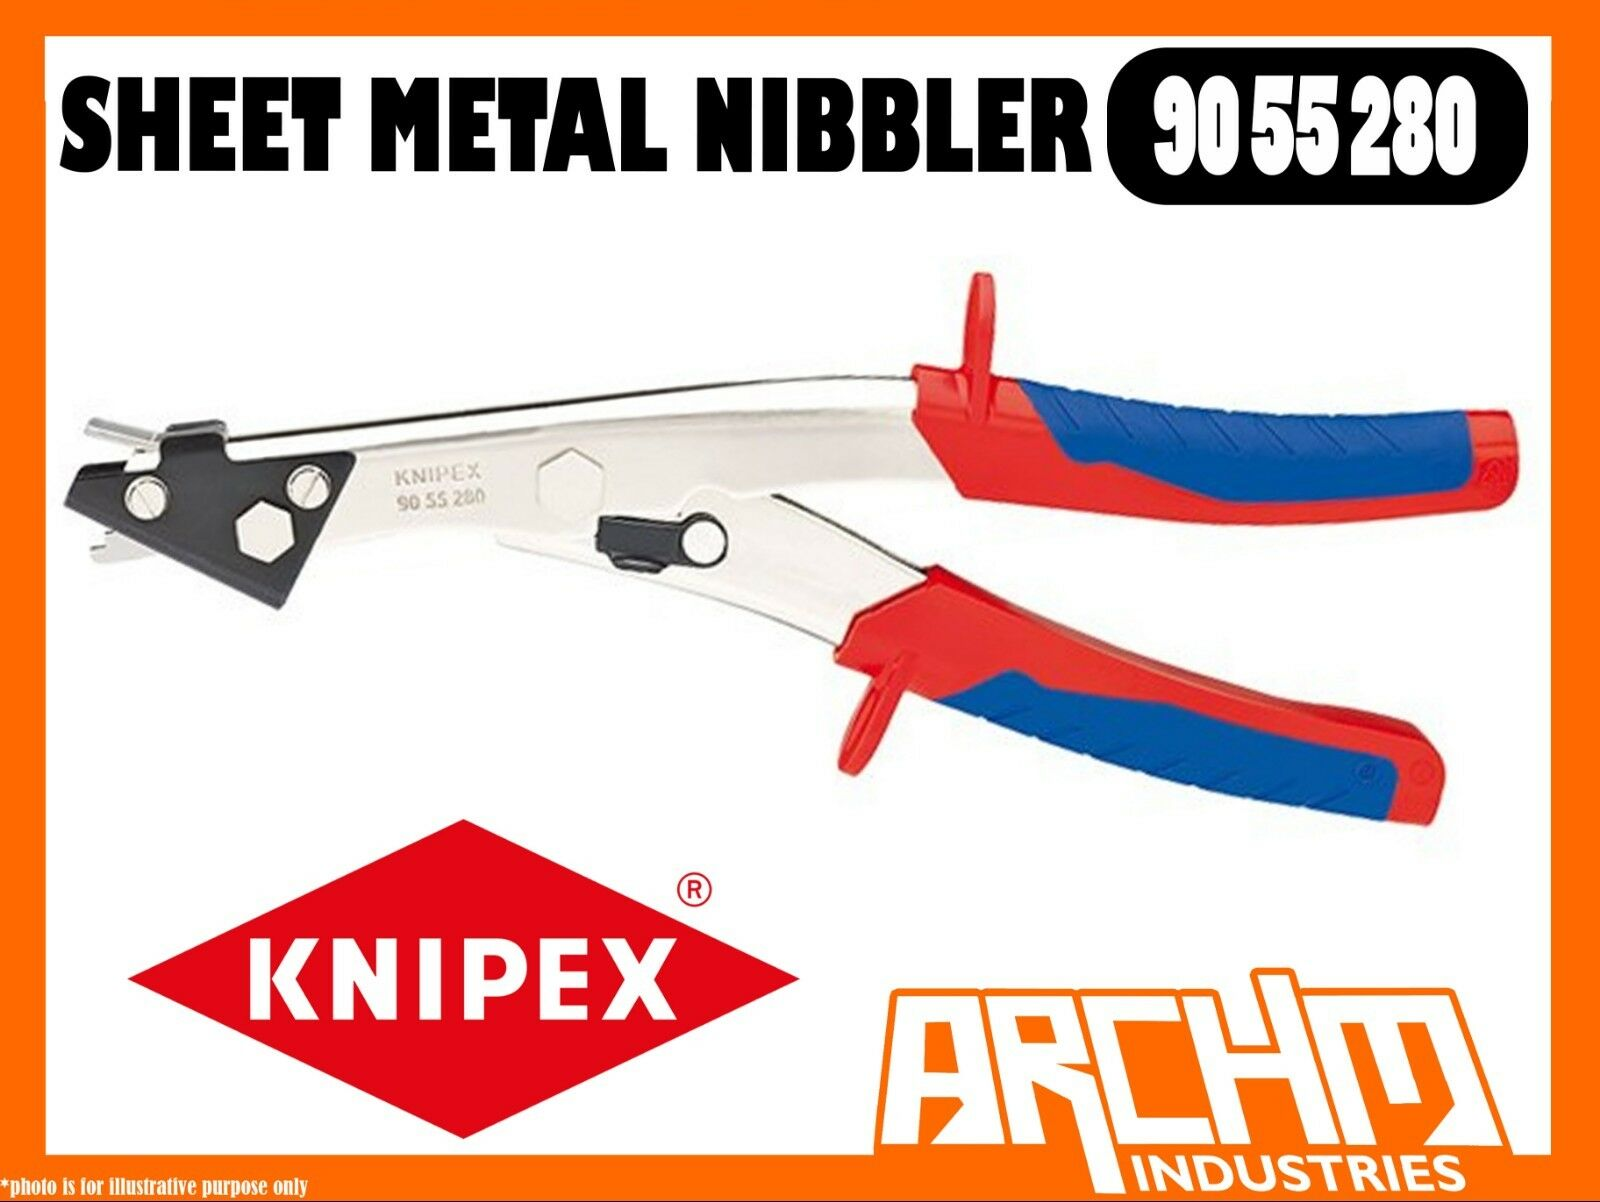 KNIPEX 9055280 - SHEET METAL NIBBLER - 280MM - CUTTING CLEAN CUT EDGES